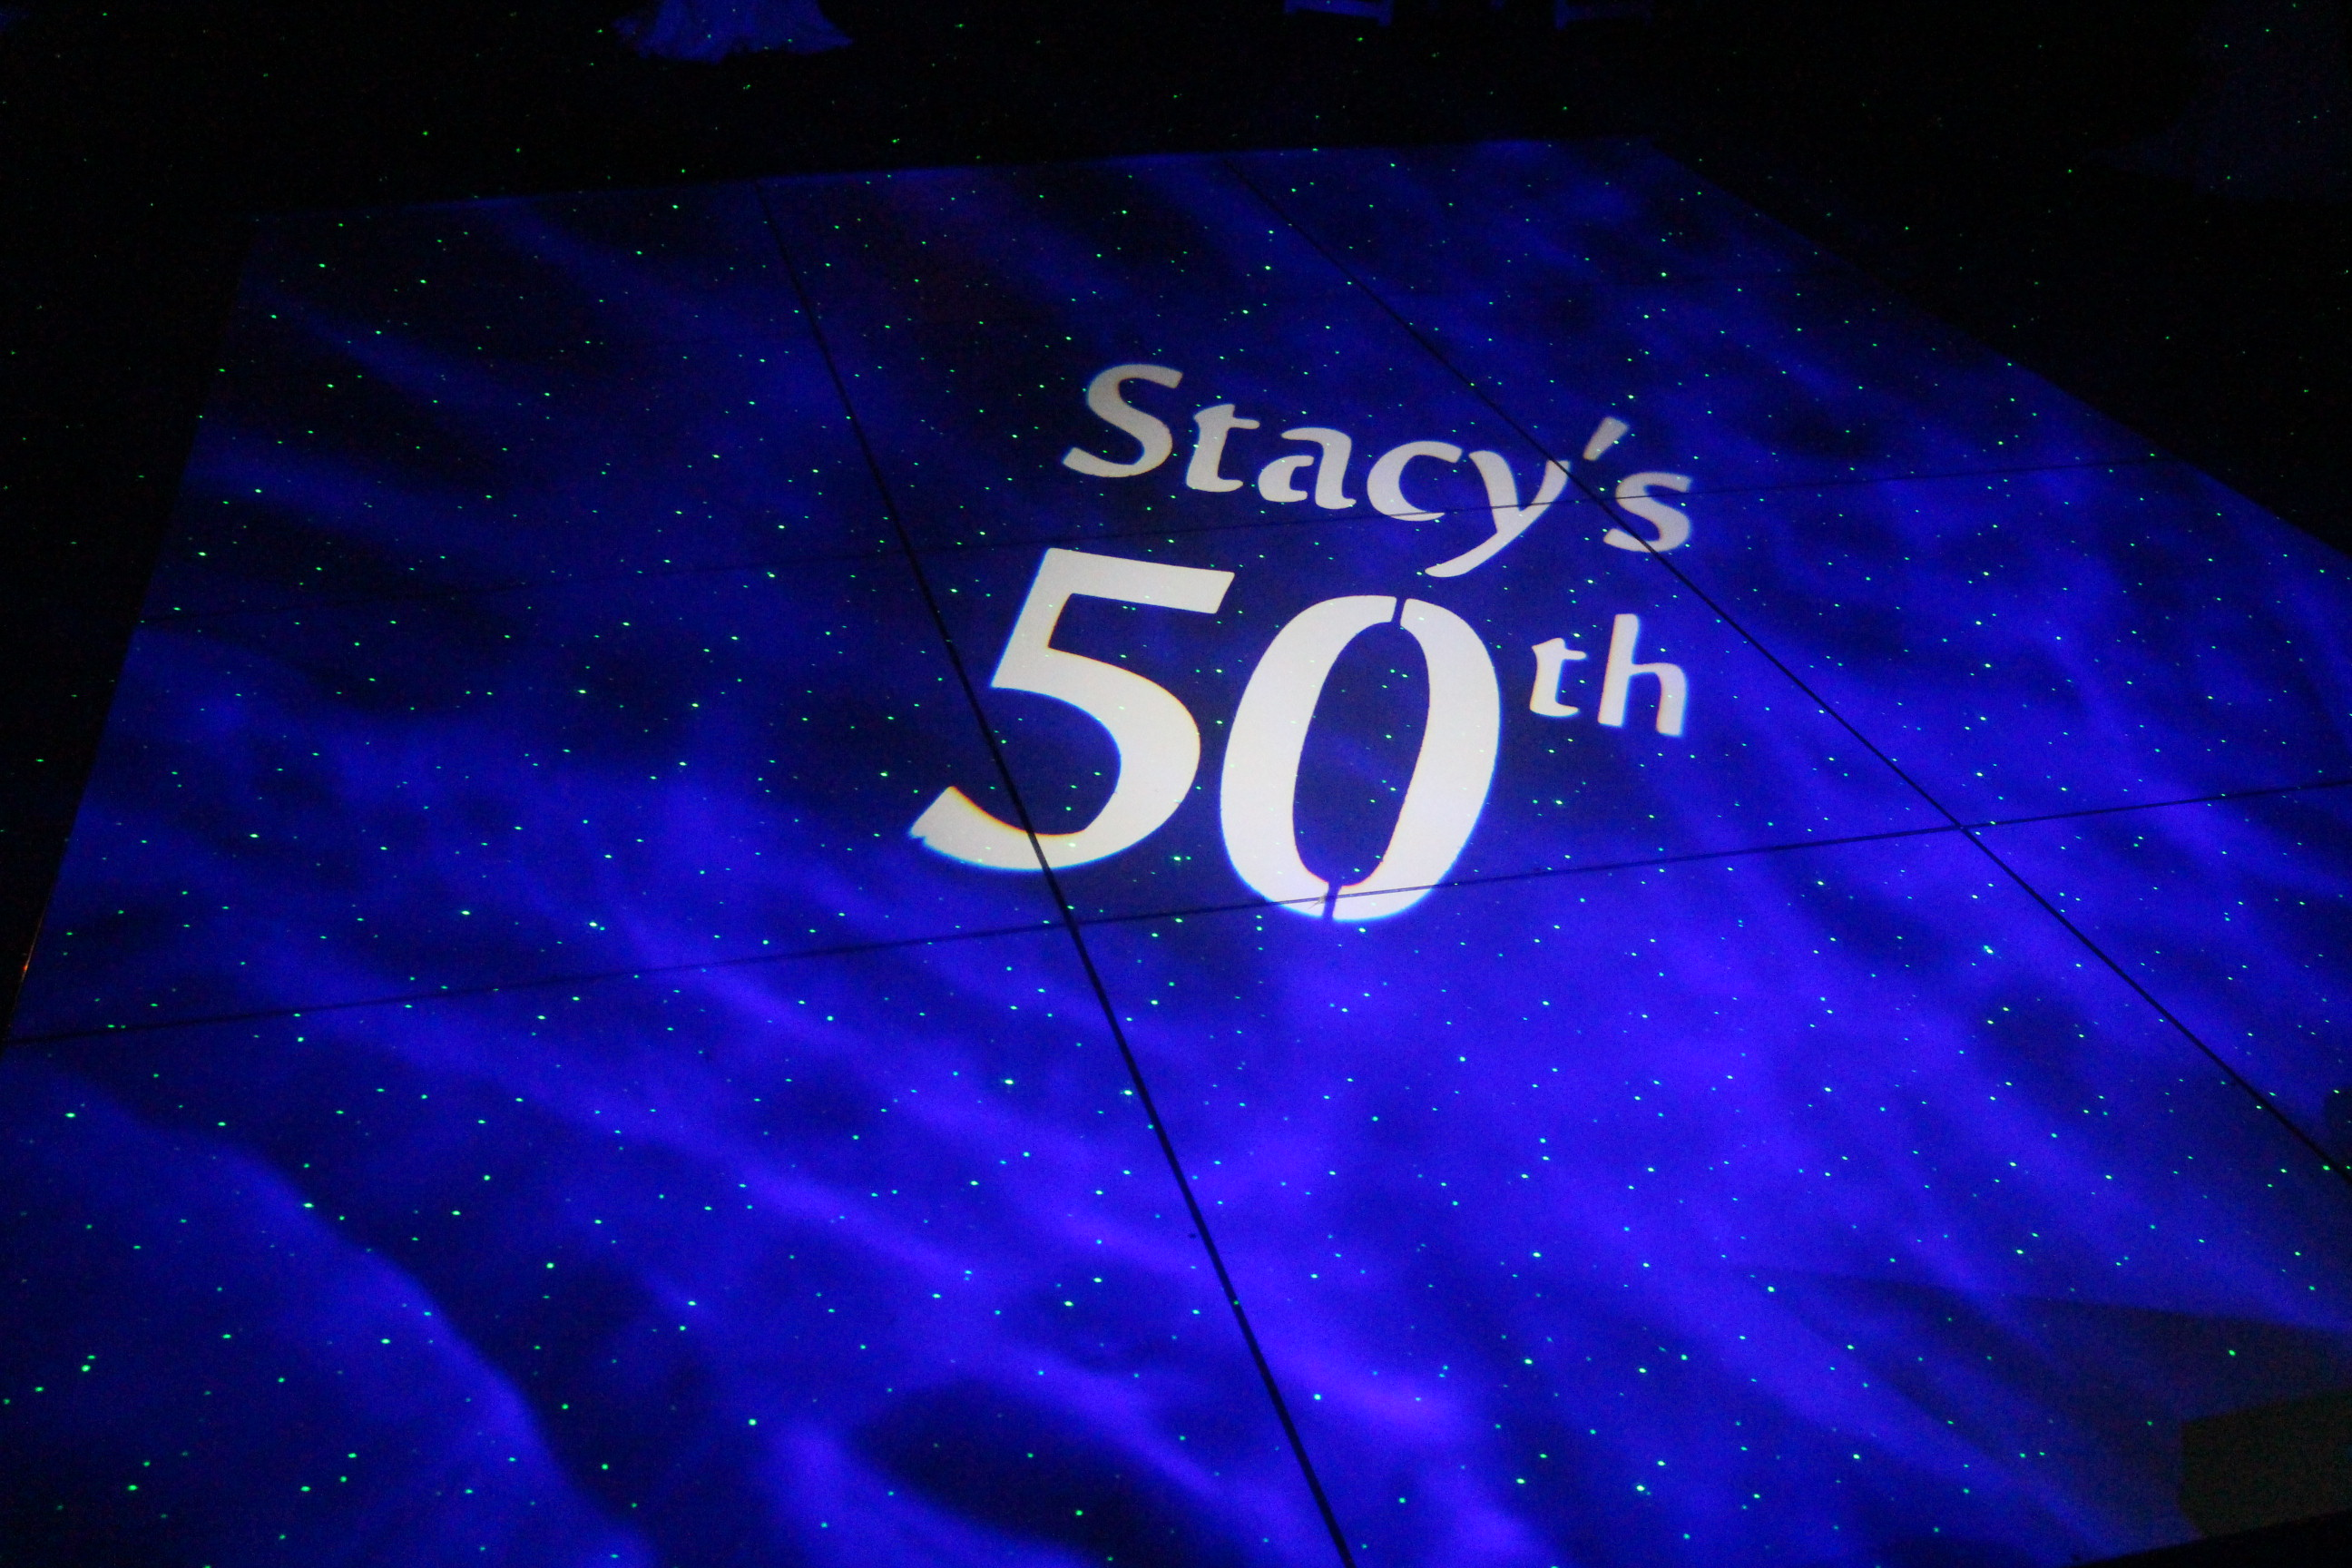 Gobo Image + Starry Night